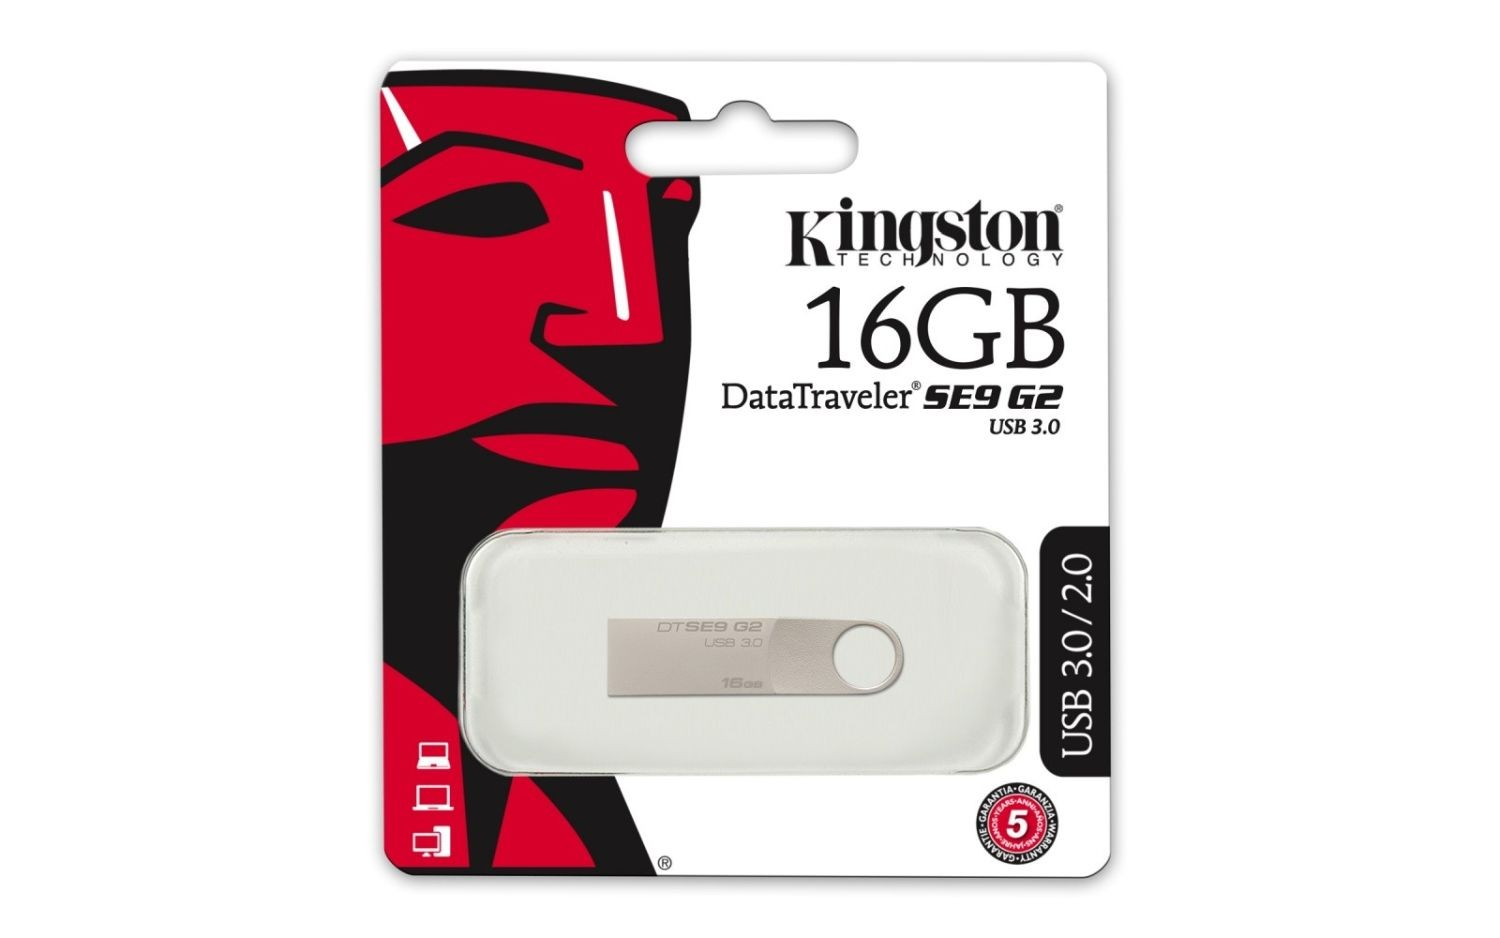 Kingston pamięć USB 16GB USB 3.0 DataTraveler SE9 G2 (Metal casing)